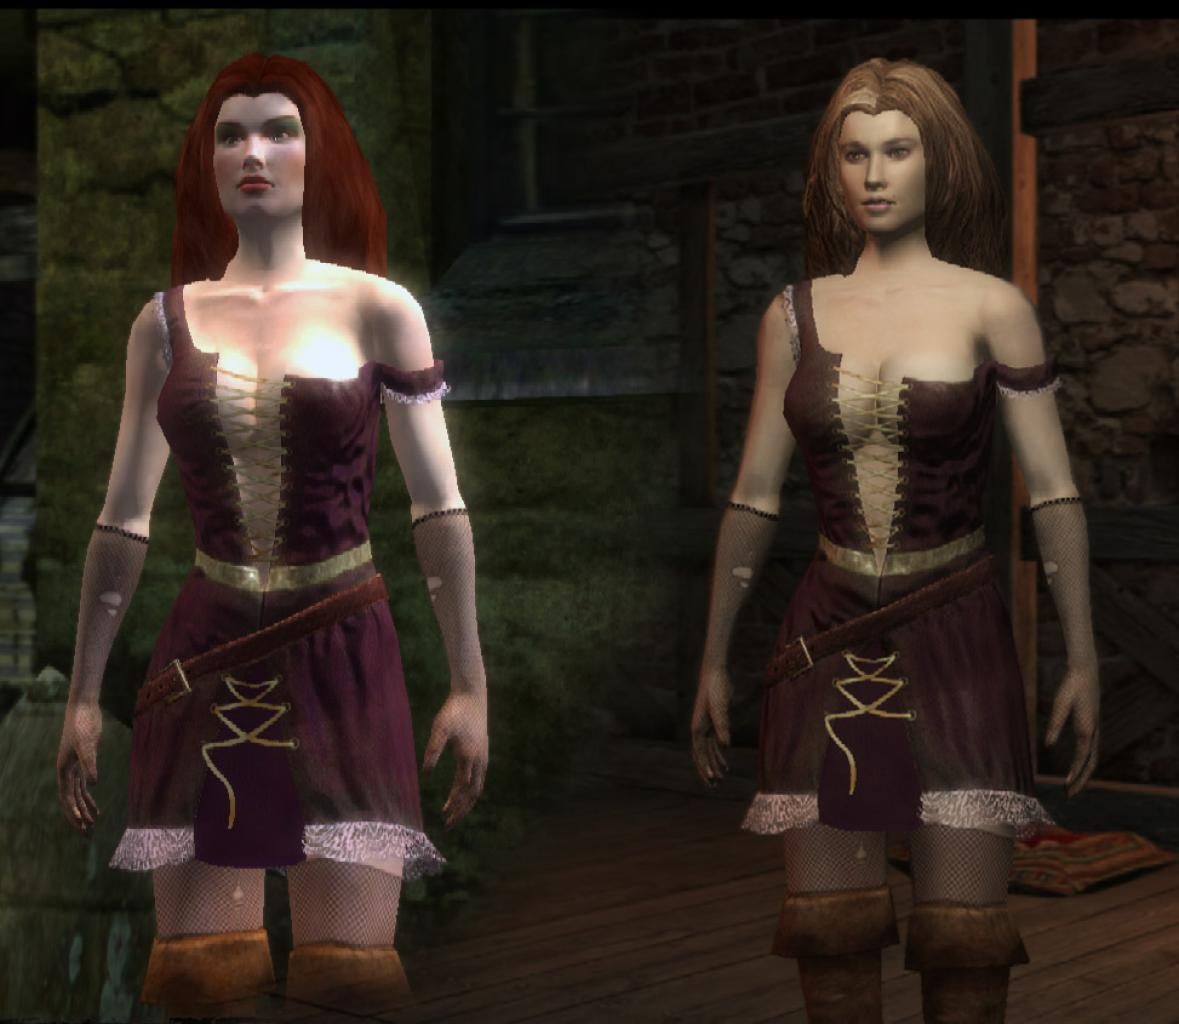 [27/08/08] The Witcher Enhanced: new polygon model for Carmen (on the left: the old one; on the right: the enhanced edition)